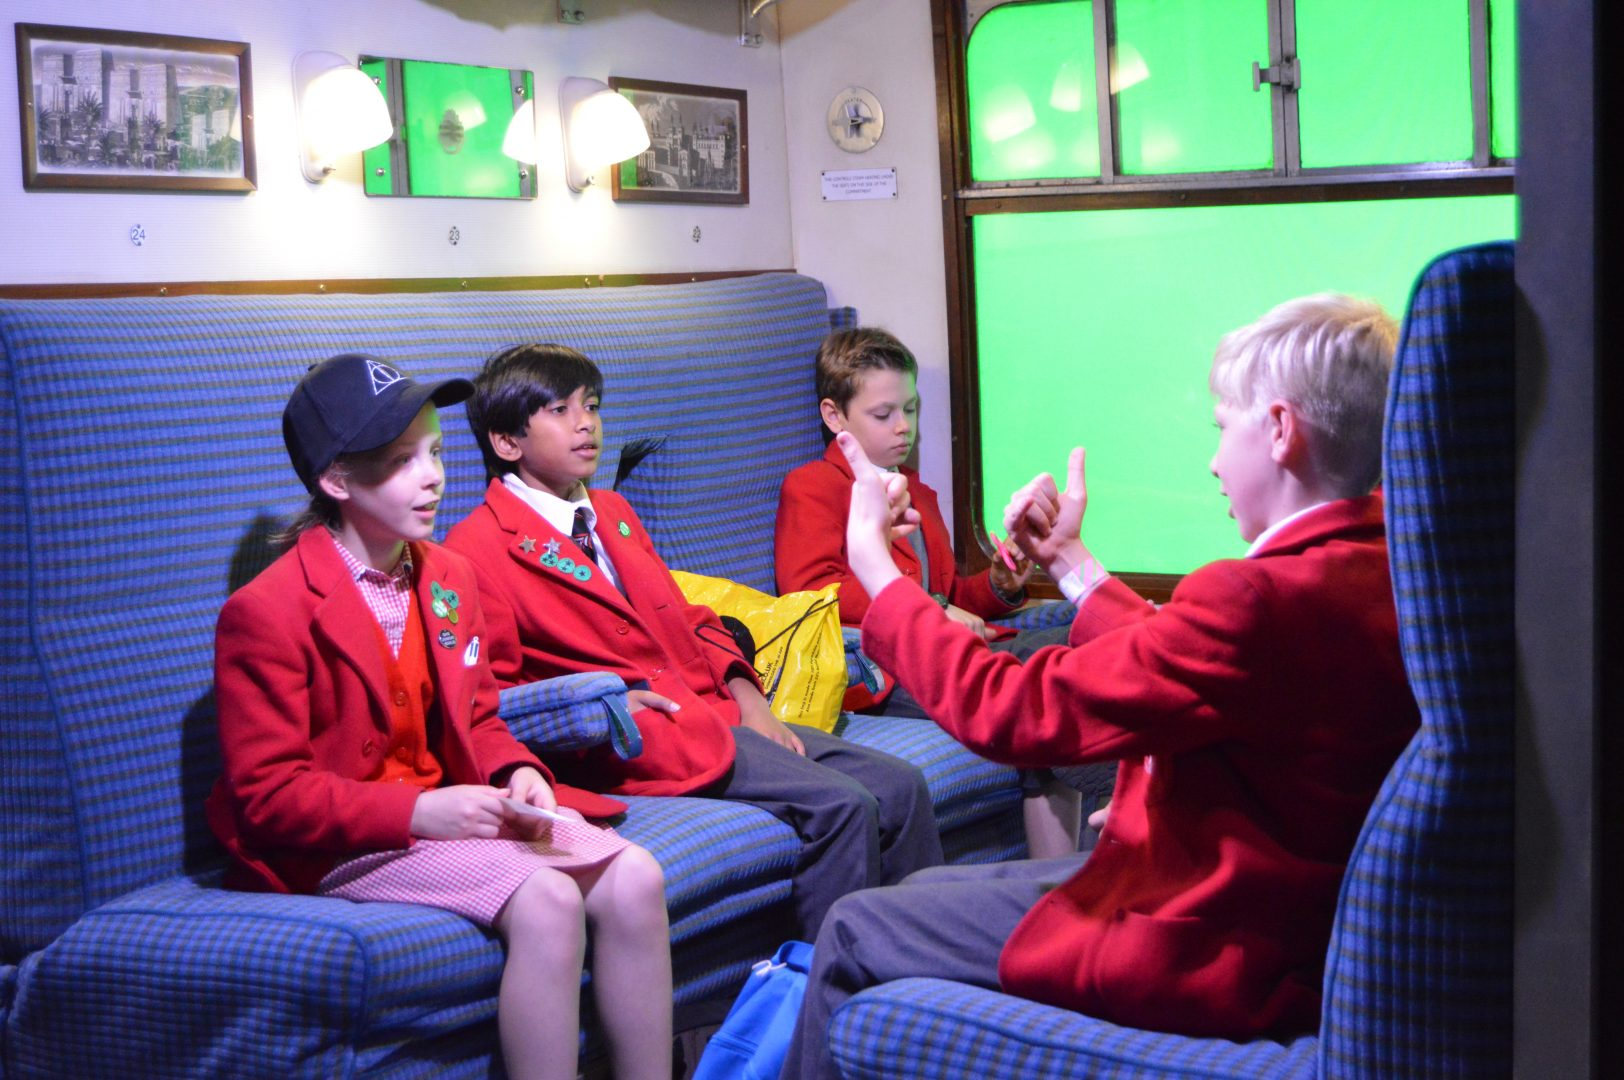 QHS pupils conversing at the museum